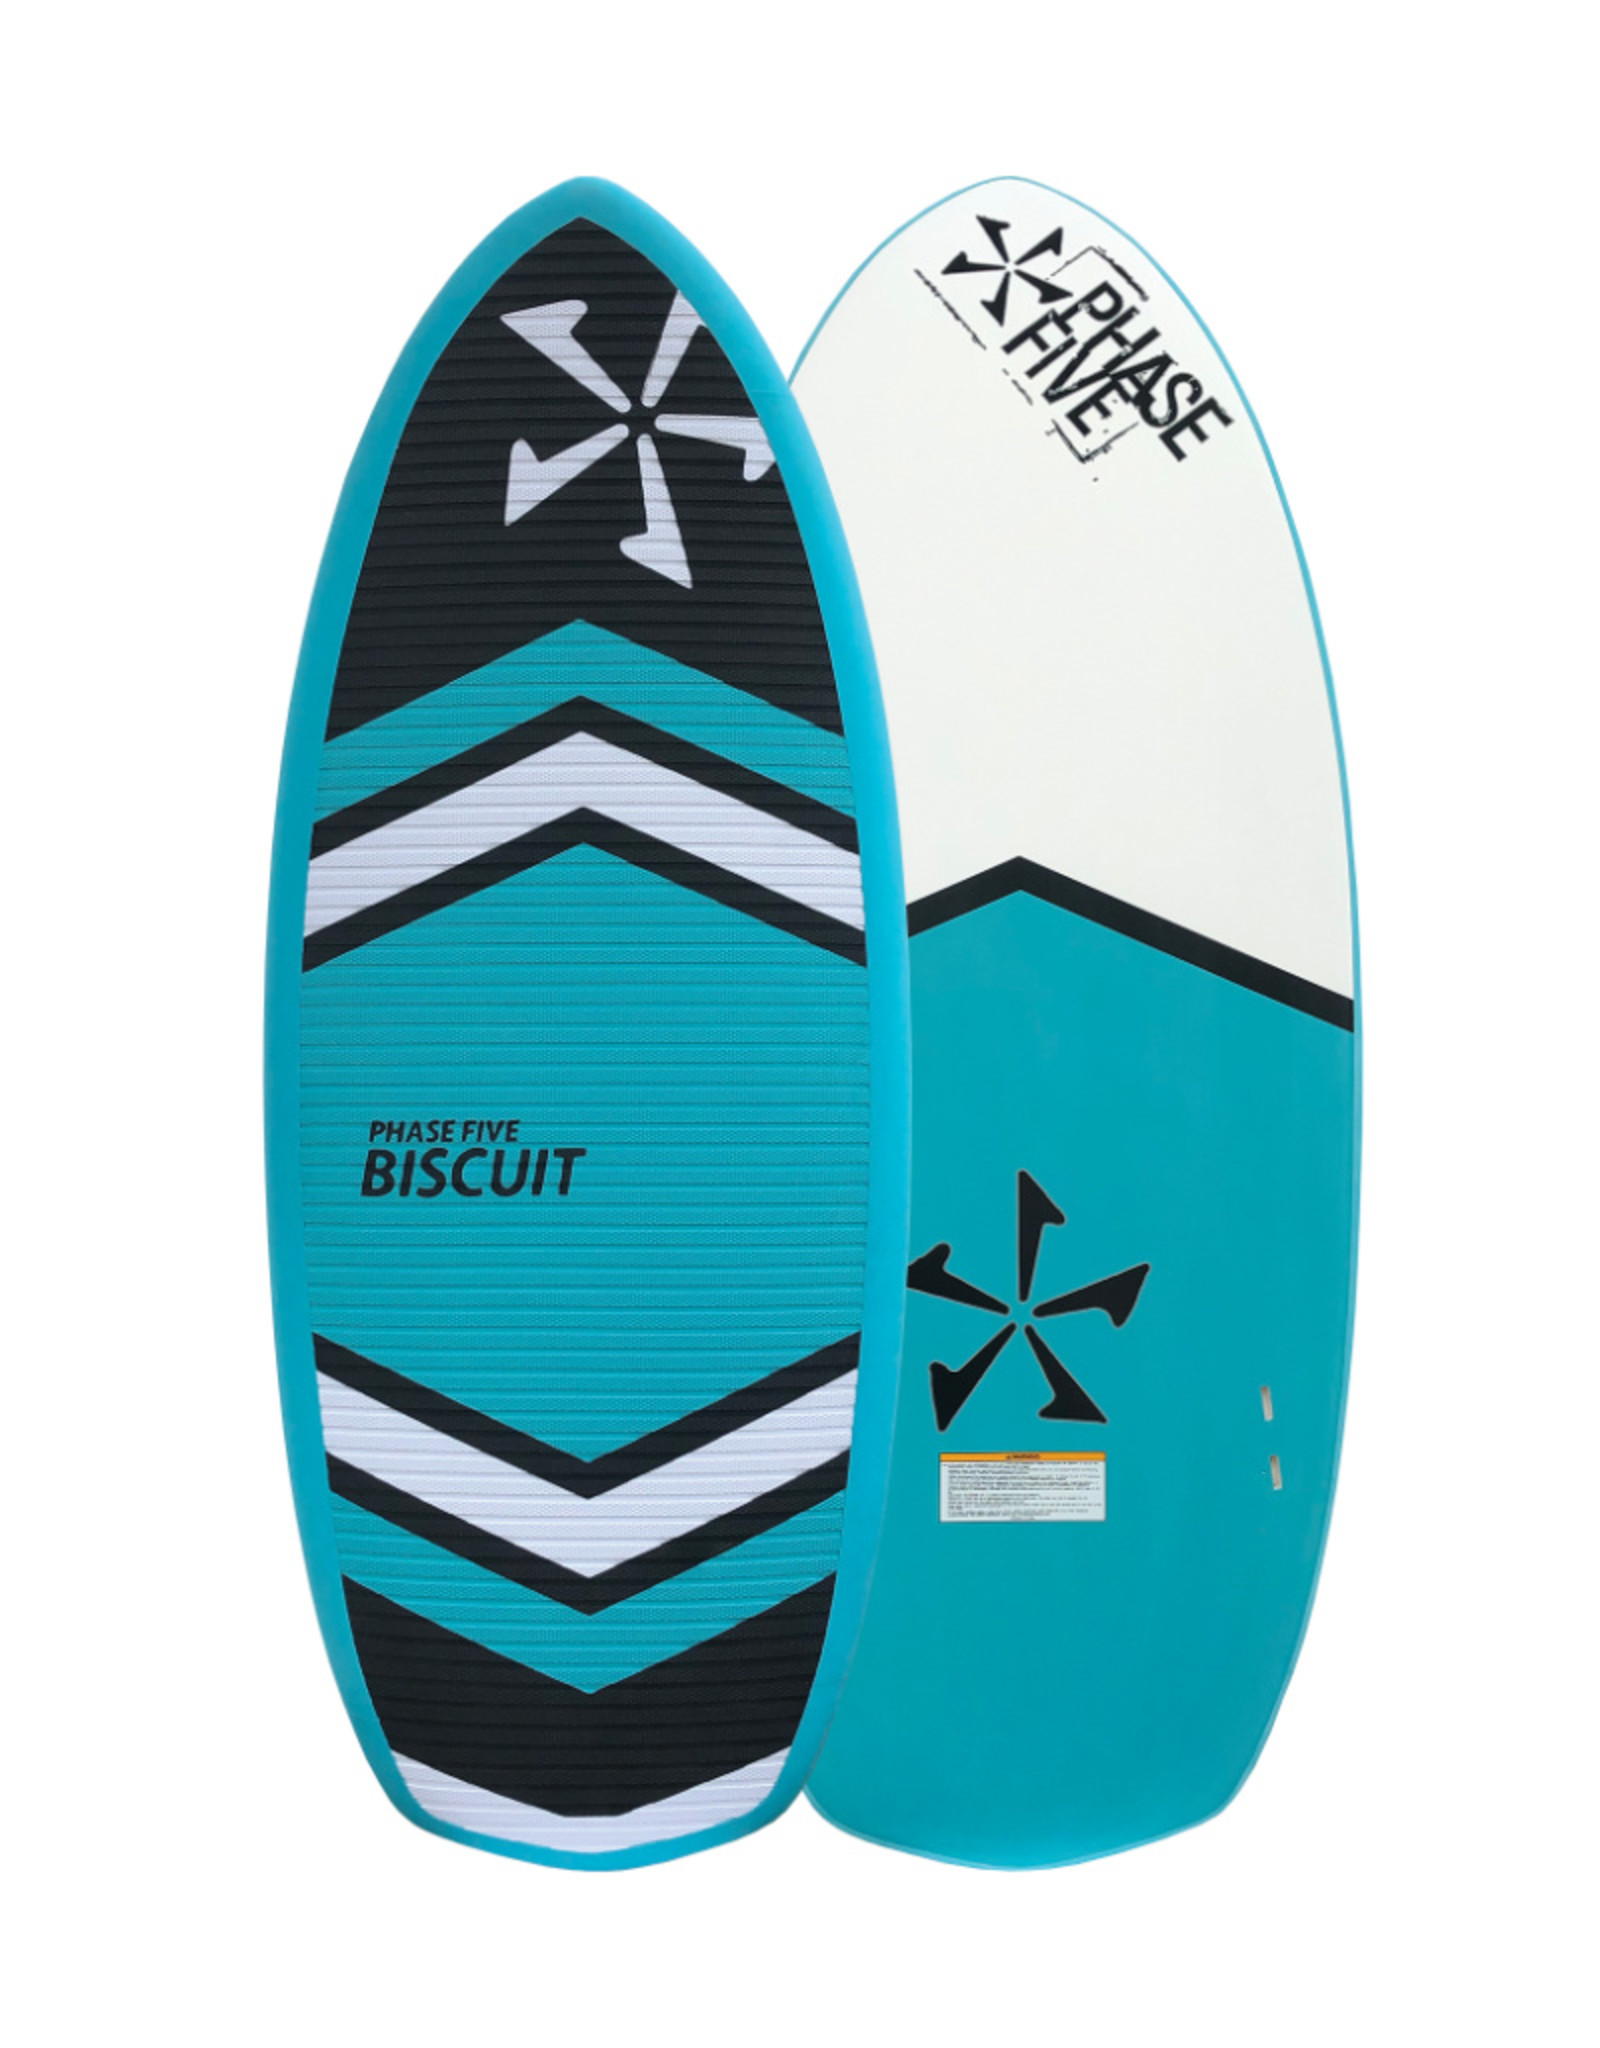 "Phase Five Phase Five Biscuit 54"" Surf-Style Wakesurf"